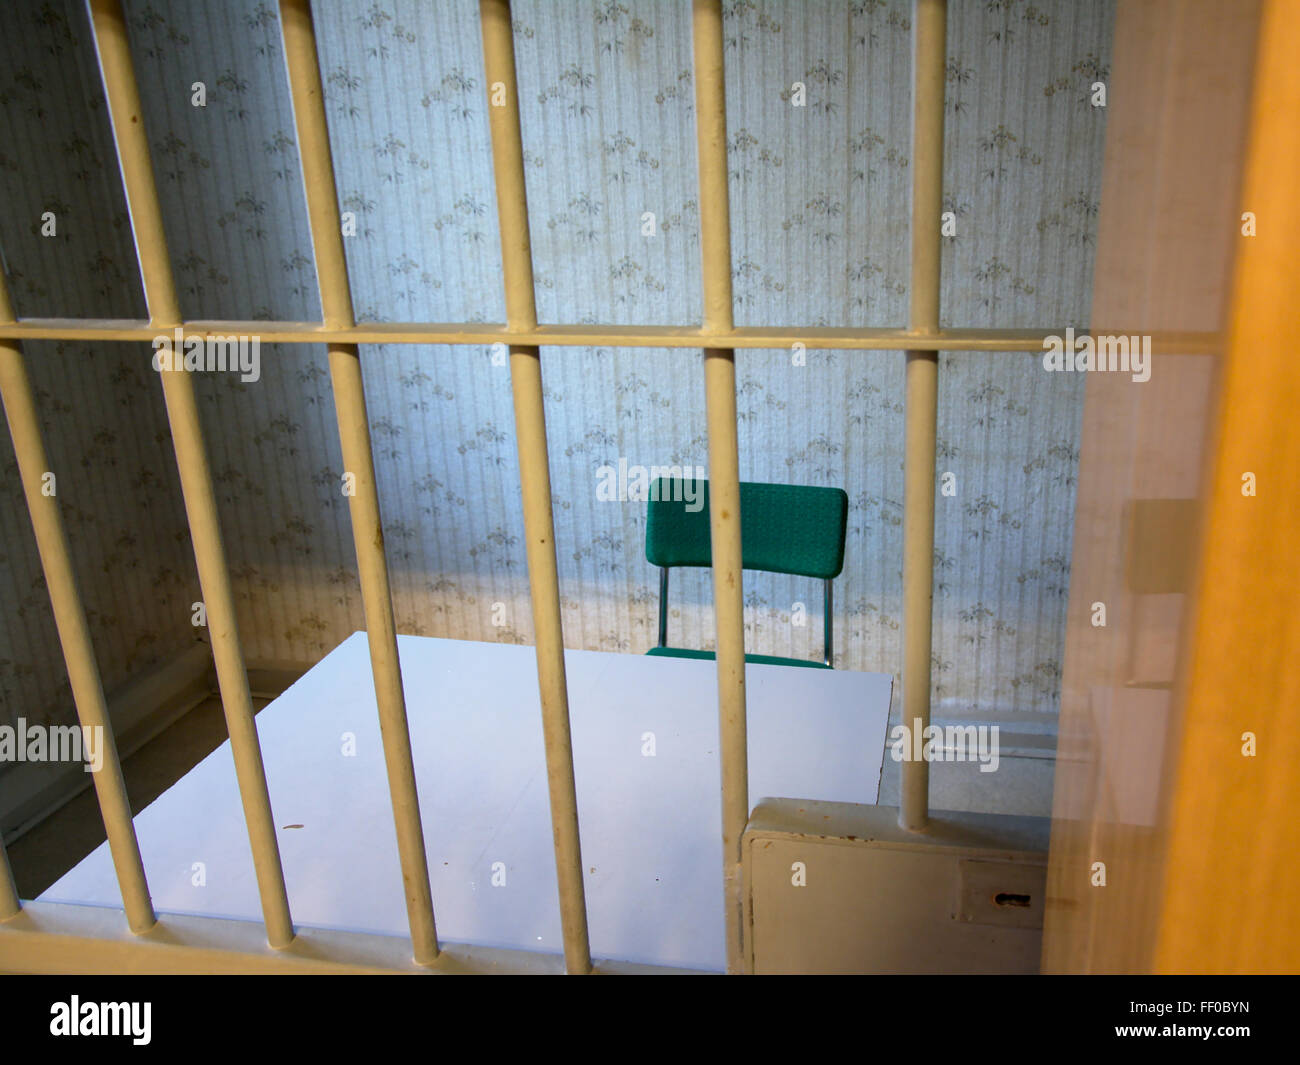 Interrogation room in Hohenschoenhausen, a stasi prison in ddr times, now a museum and memorial. - Stock Image